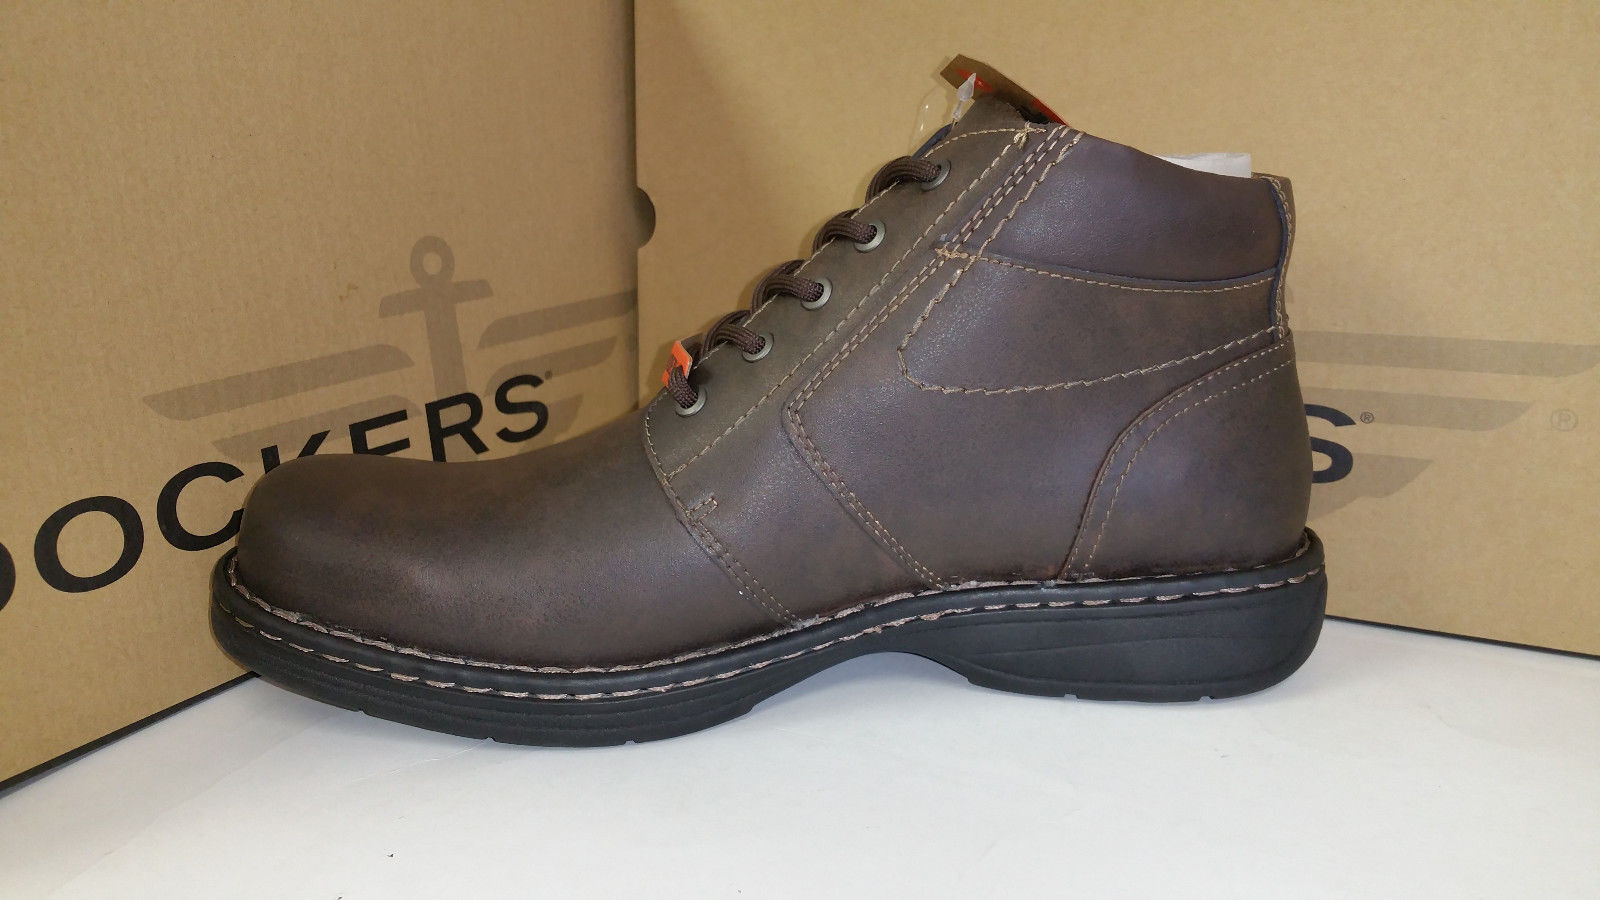 600084b46676 ... Dockers Men s Full Grain Leather Kingman Brown Stain Defender Defender  Defender Ankle Boots (5778) ...